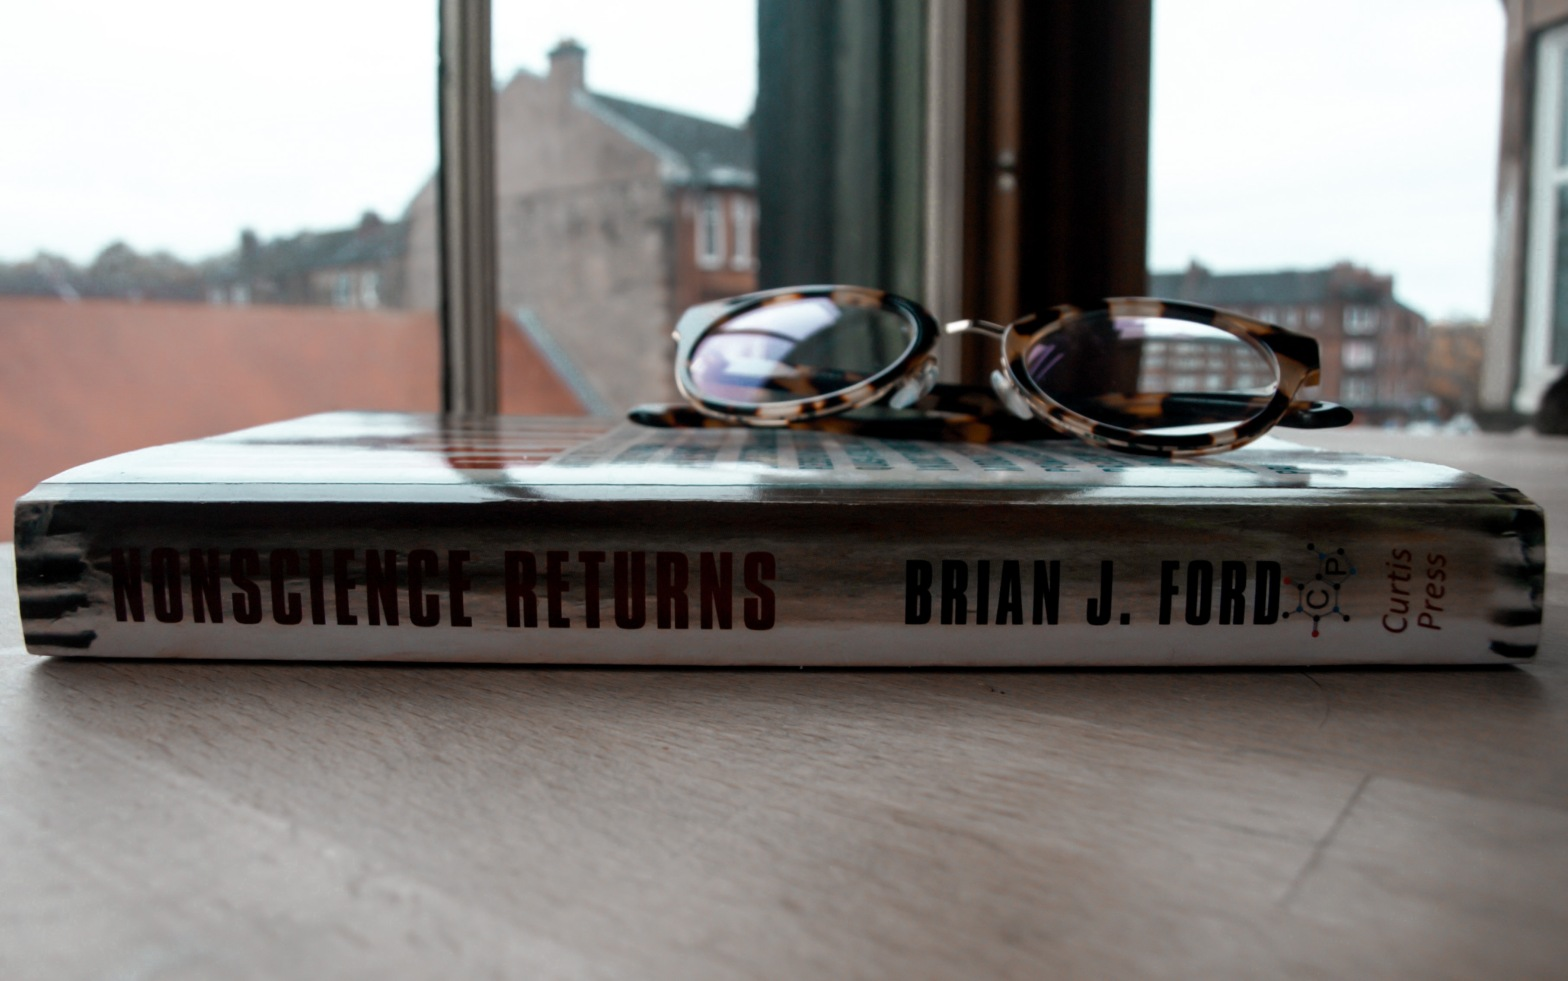 Photo of the spine of Nonscience Returns by Brian J Ford